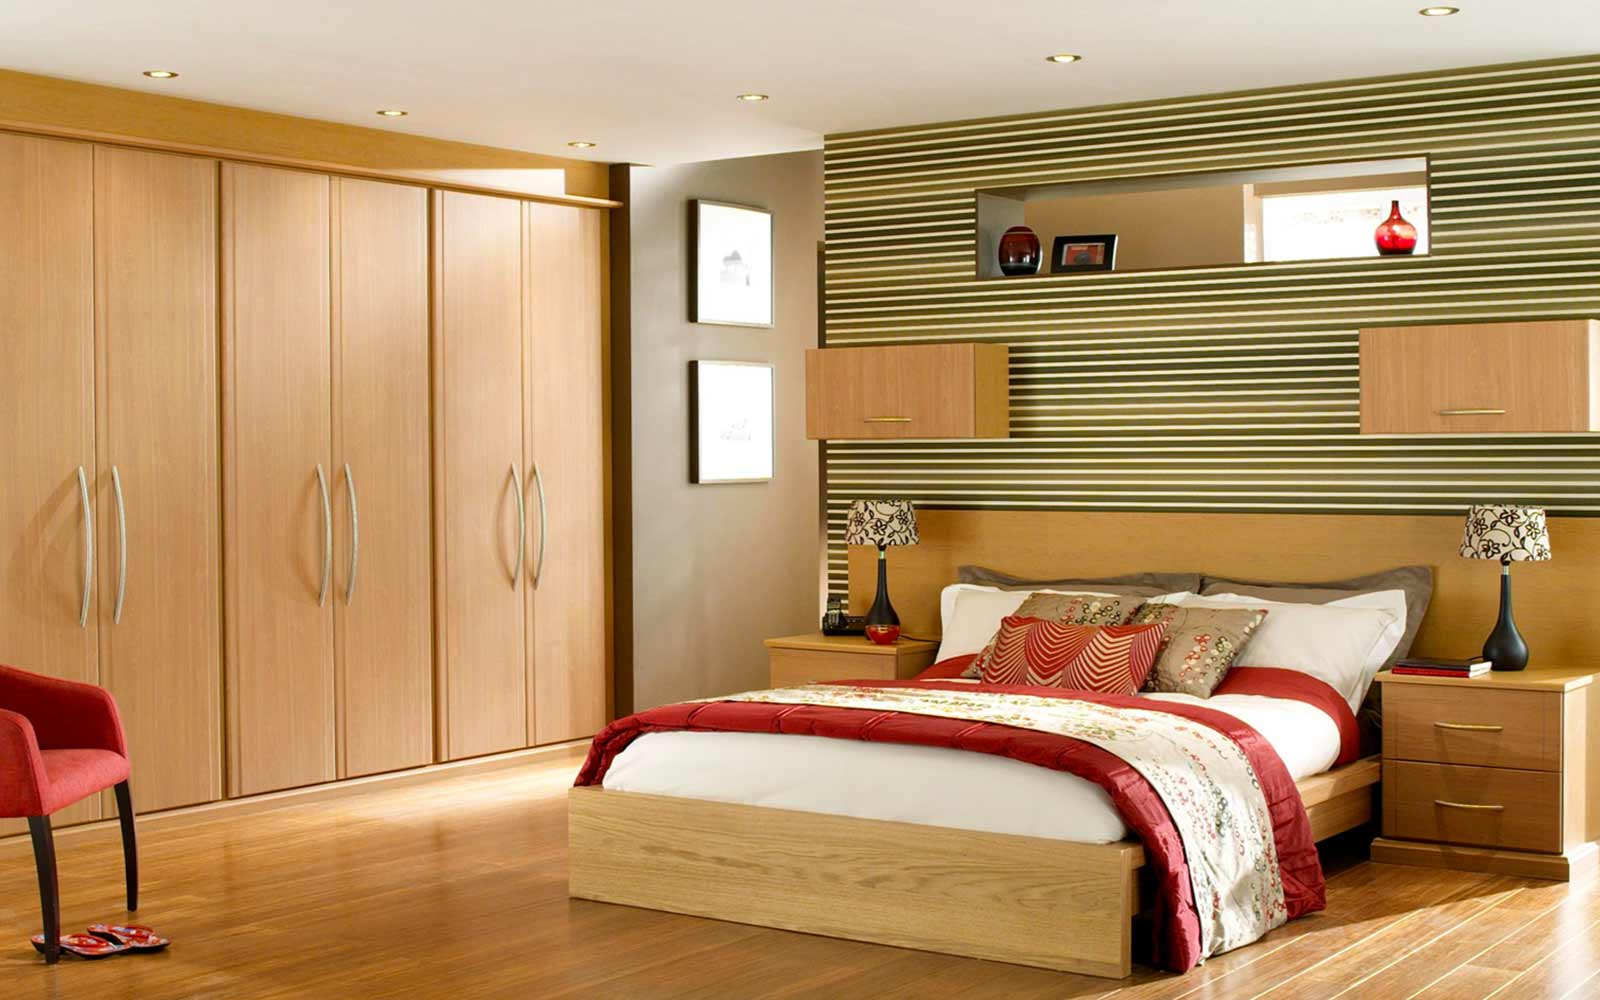 35 images of wardrobe designs for bedrooms Gorgeous small bedroom designs for indian homes